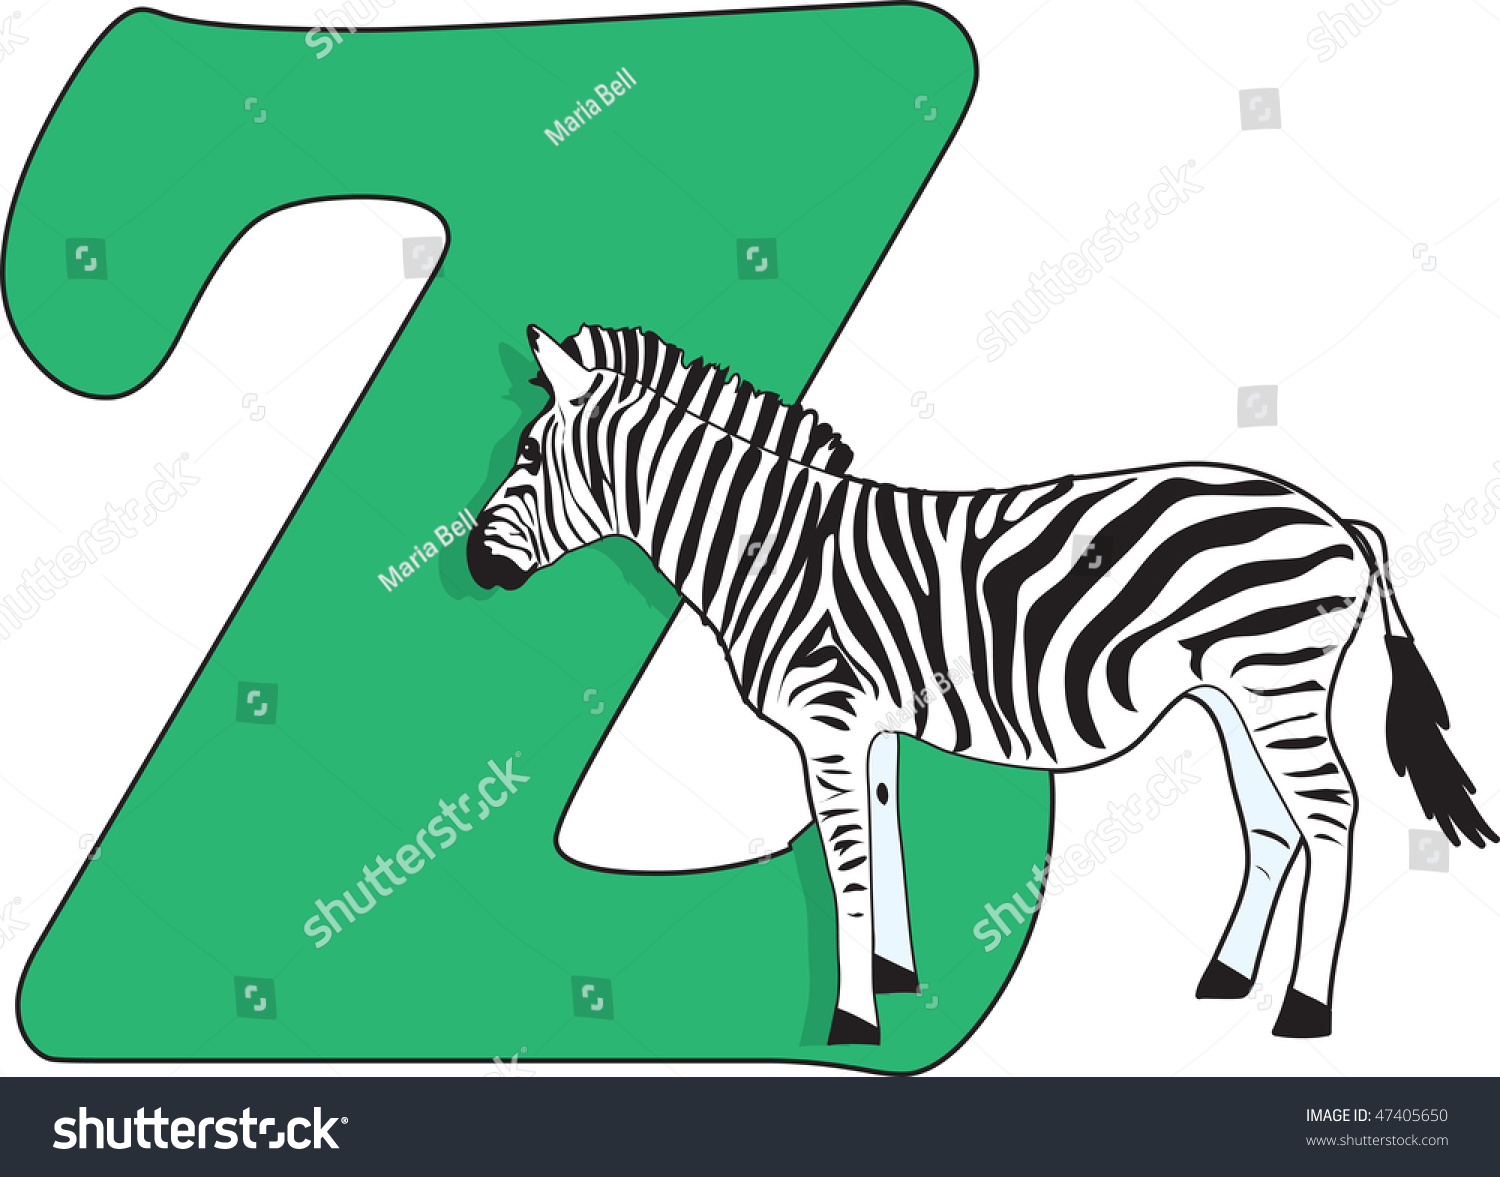 Letter Z With A Zebra Stock Vector Illustration